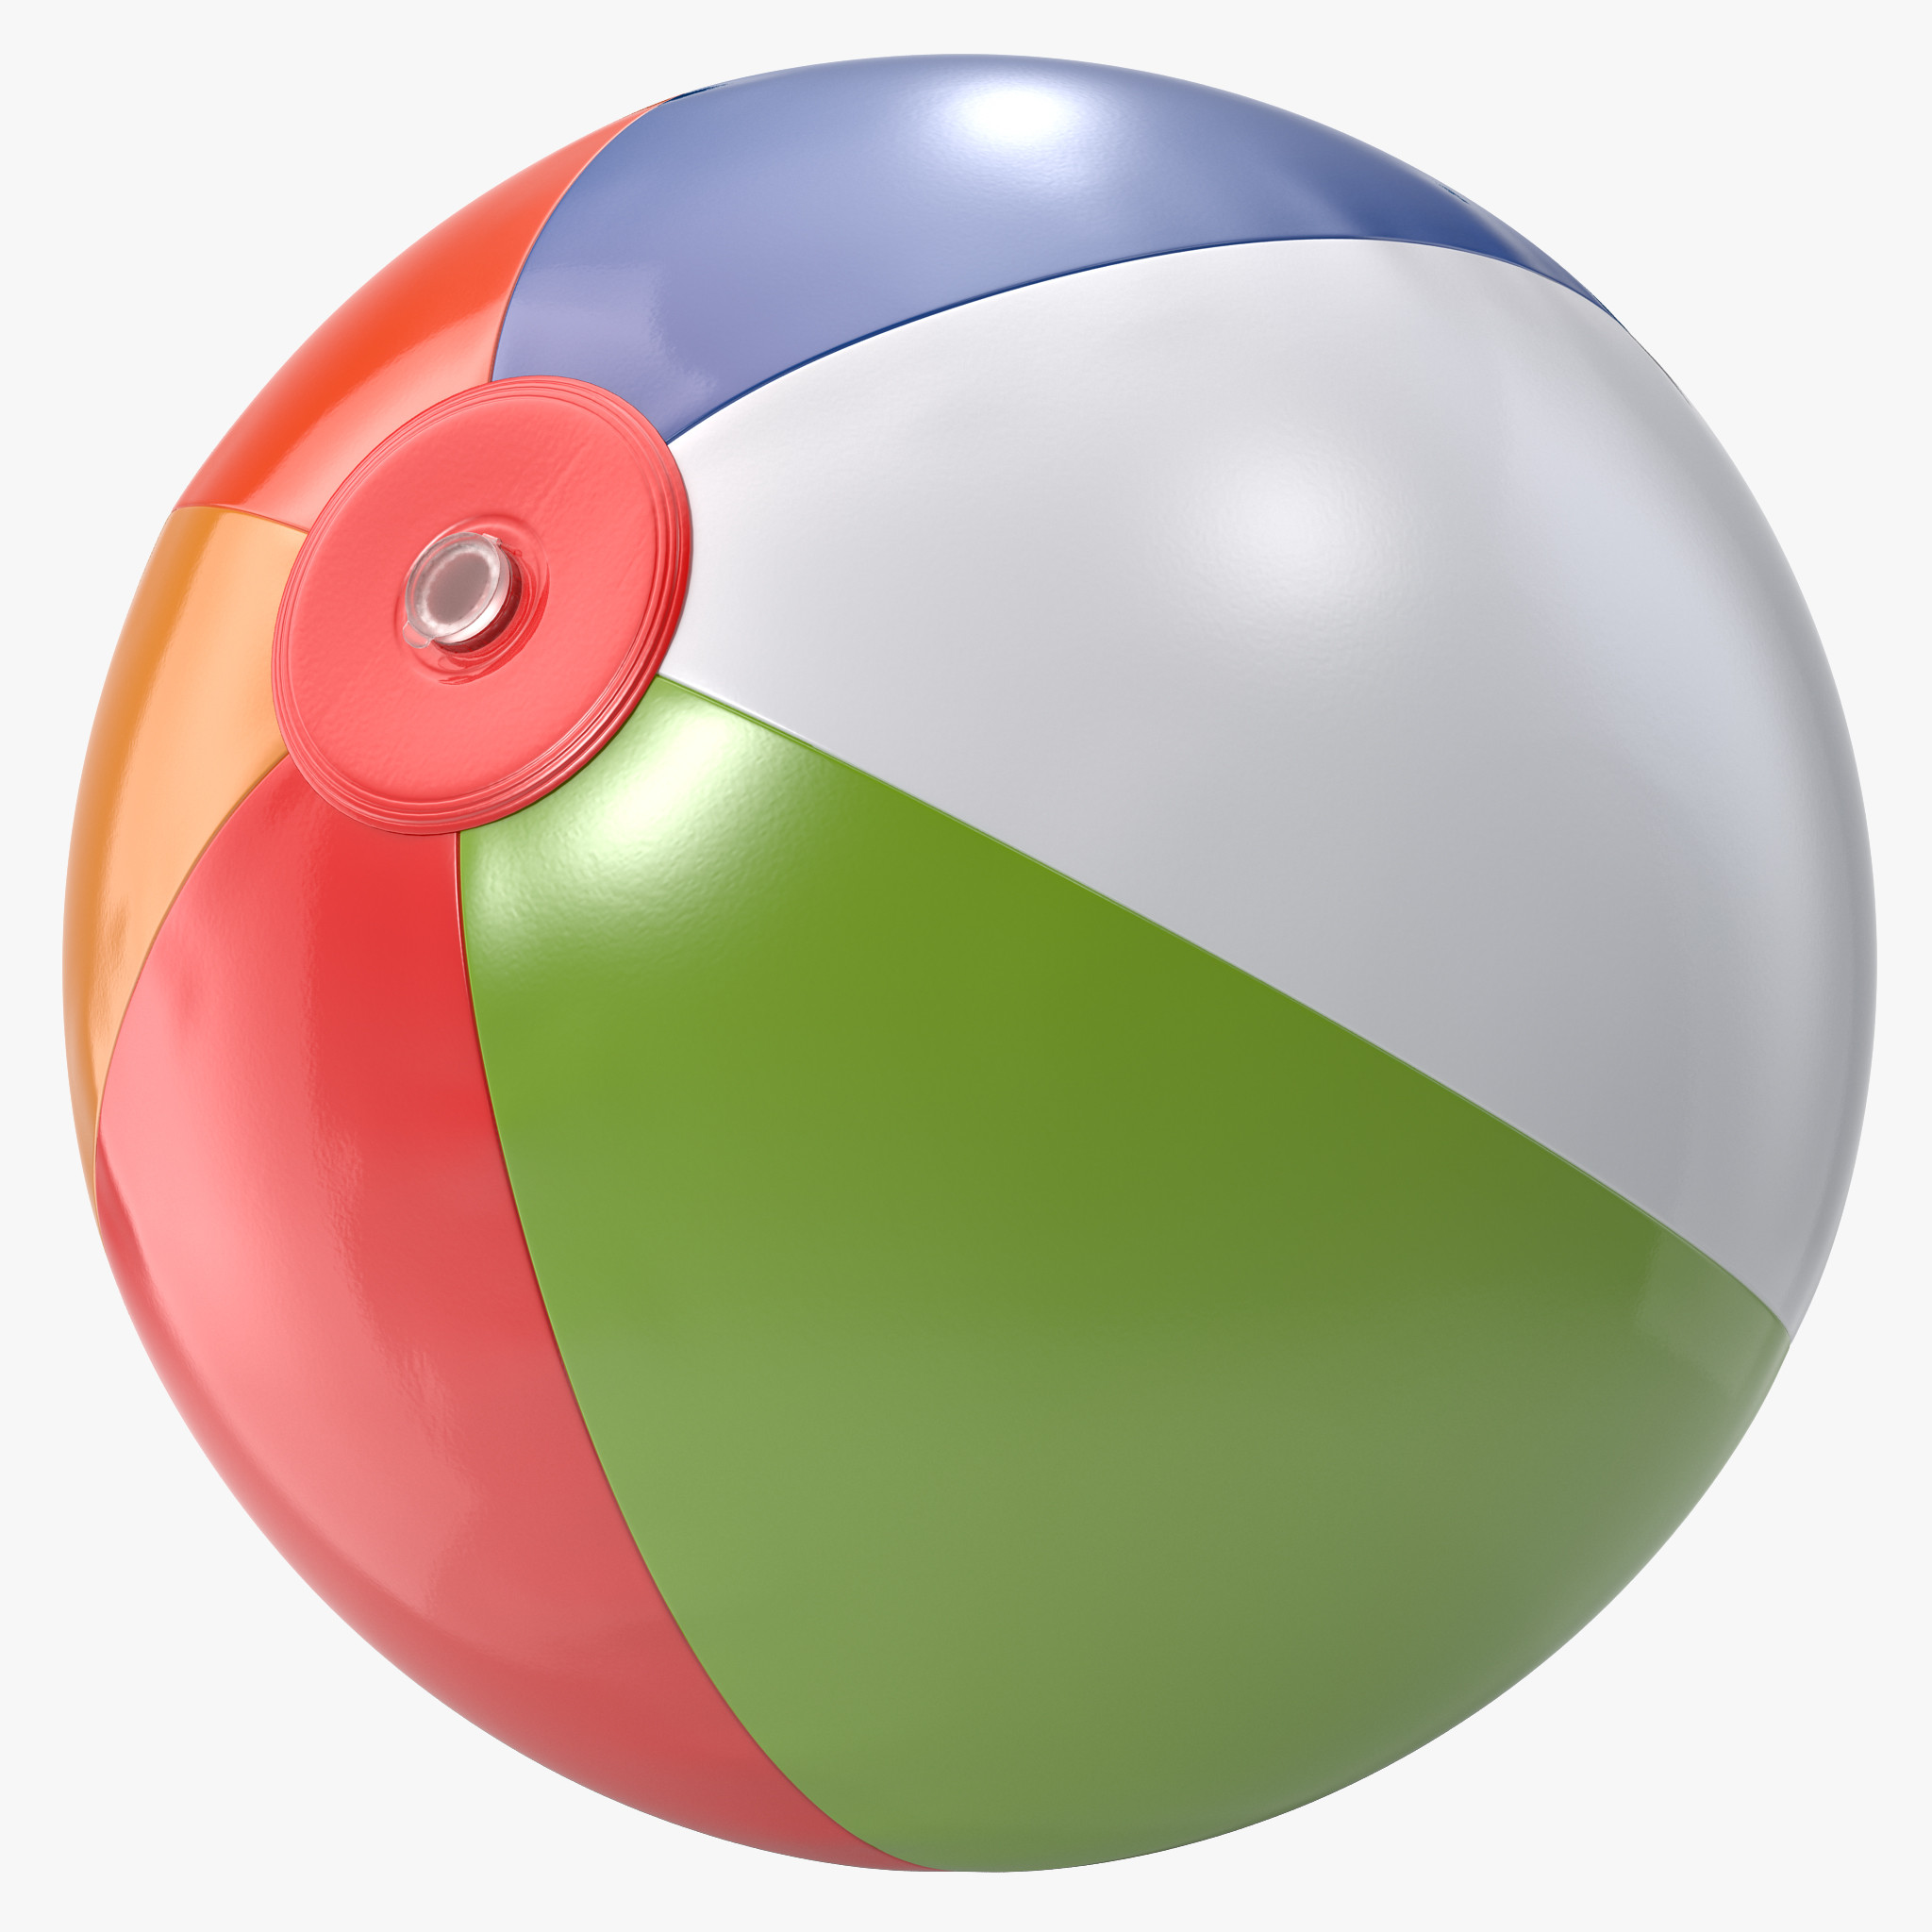 Annette Funicello's Beach Ball